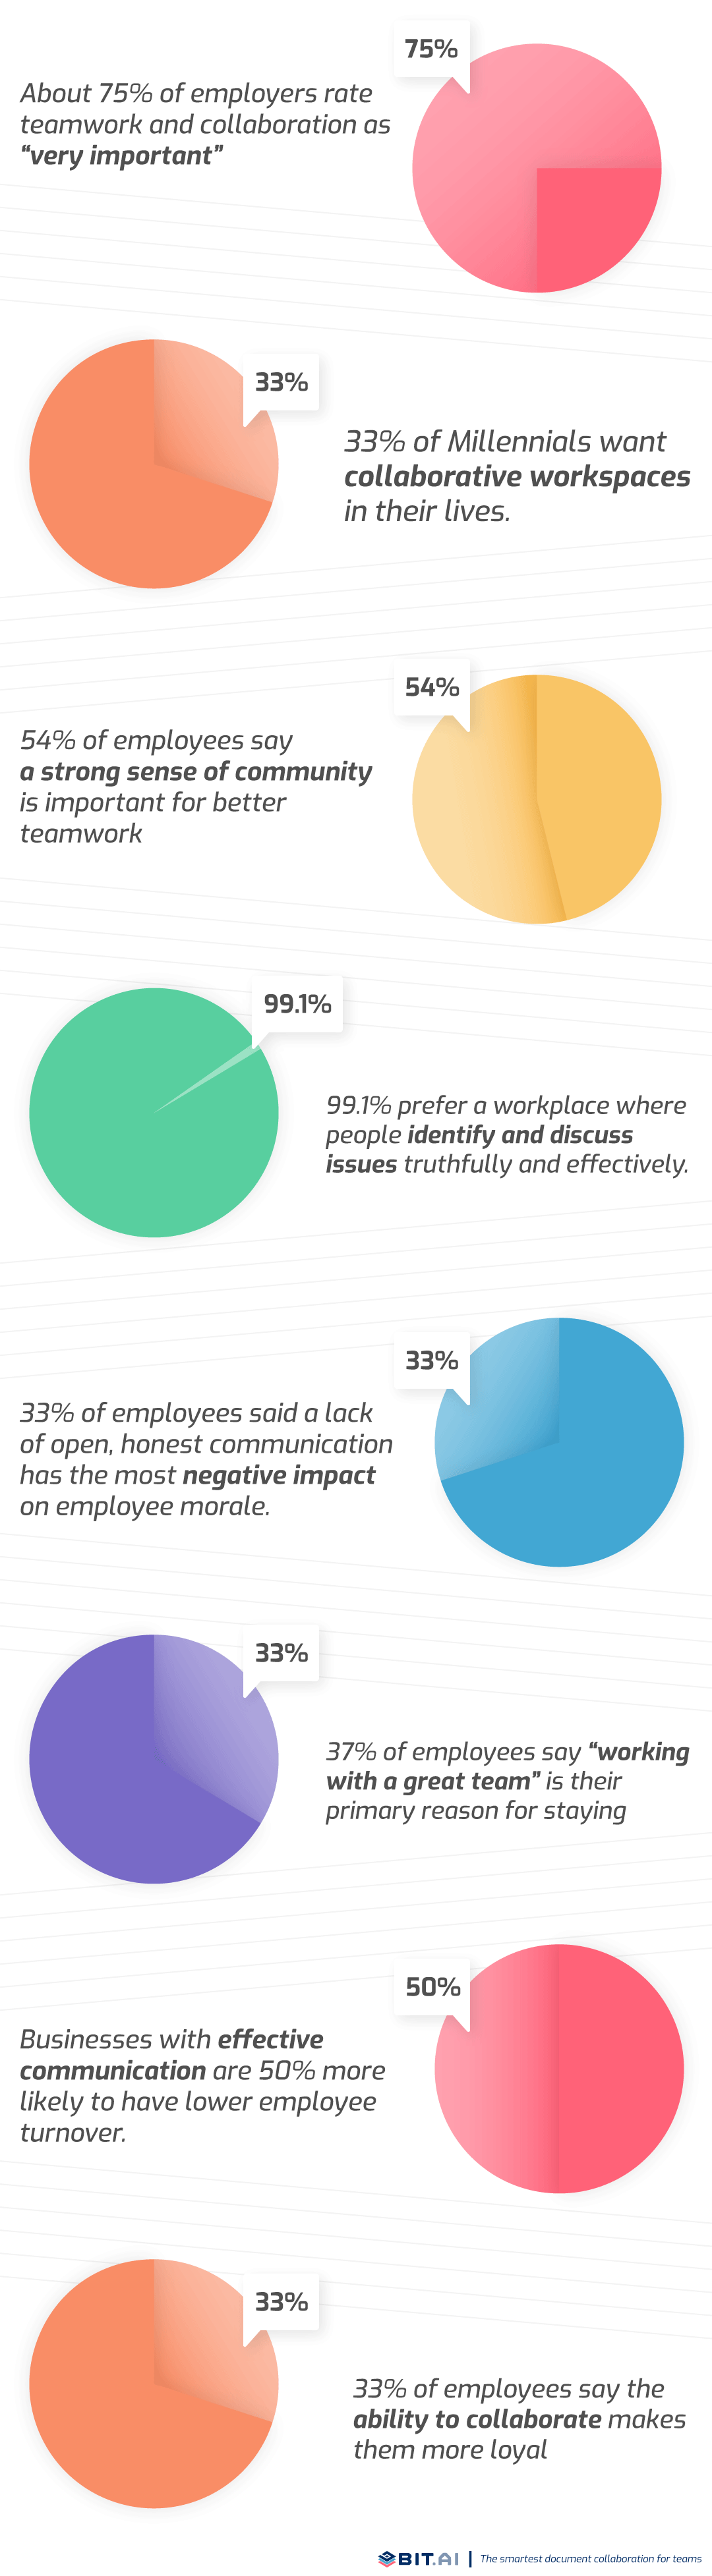 Infographic of statistics related to workplace collaboration